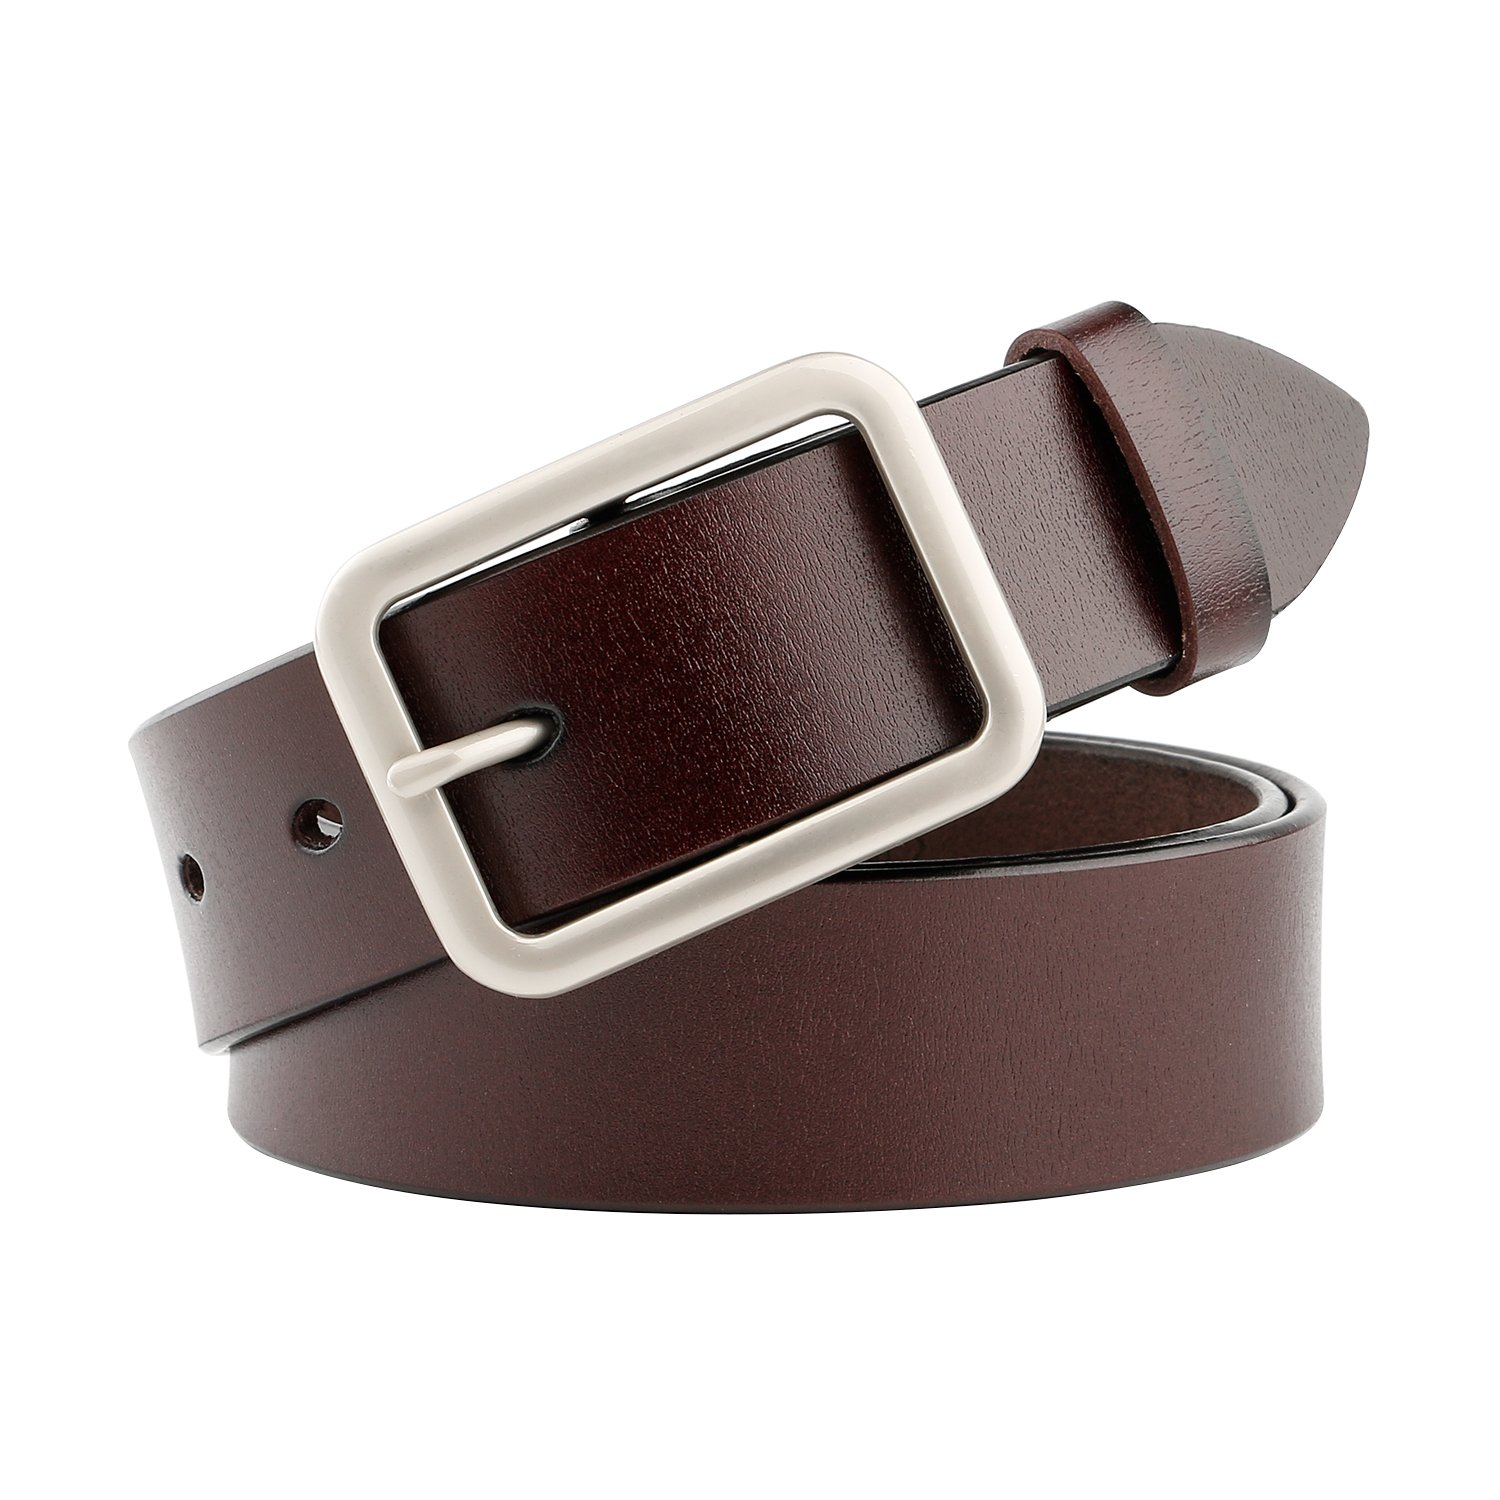 JASGOOD Jeans Belt for Women Genuine Leather Belt with Pin Buckle JA032-Coffee-105